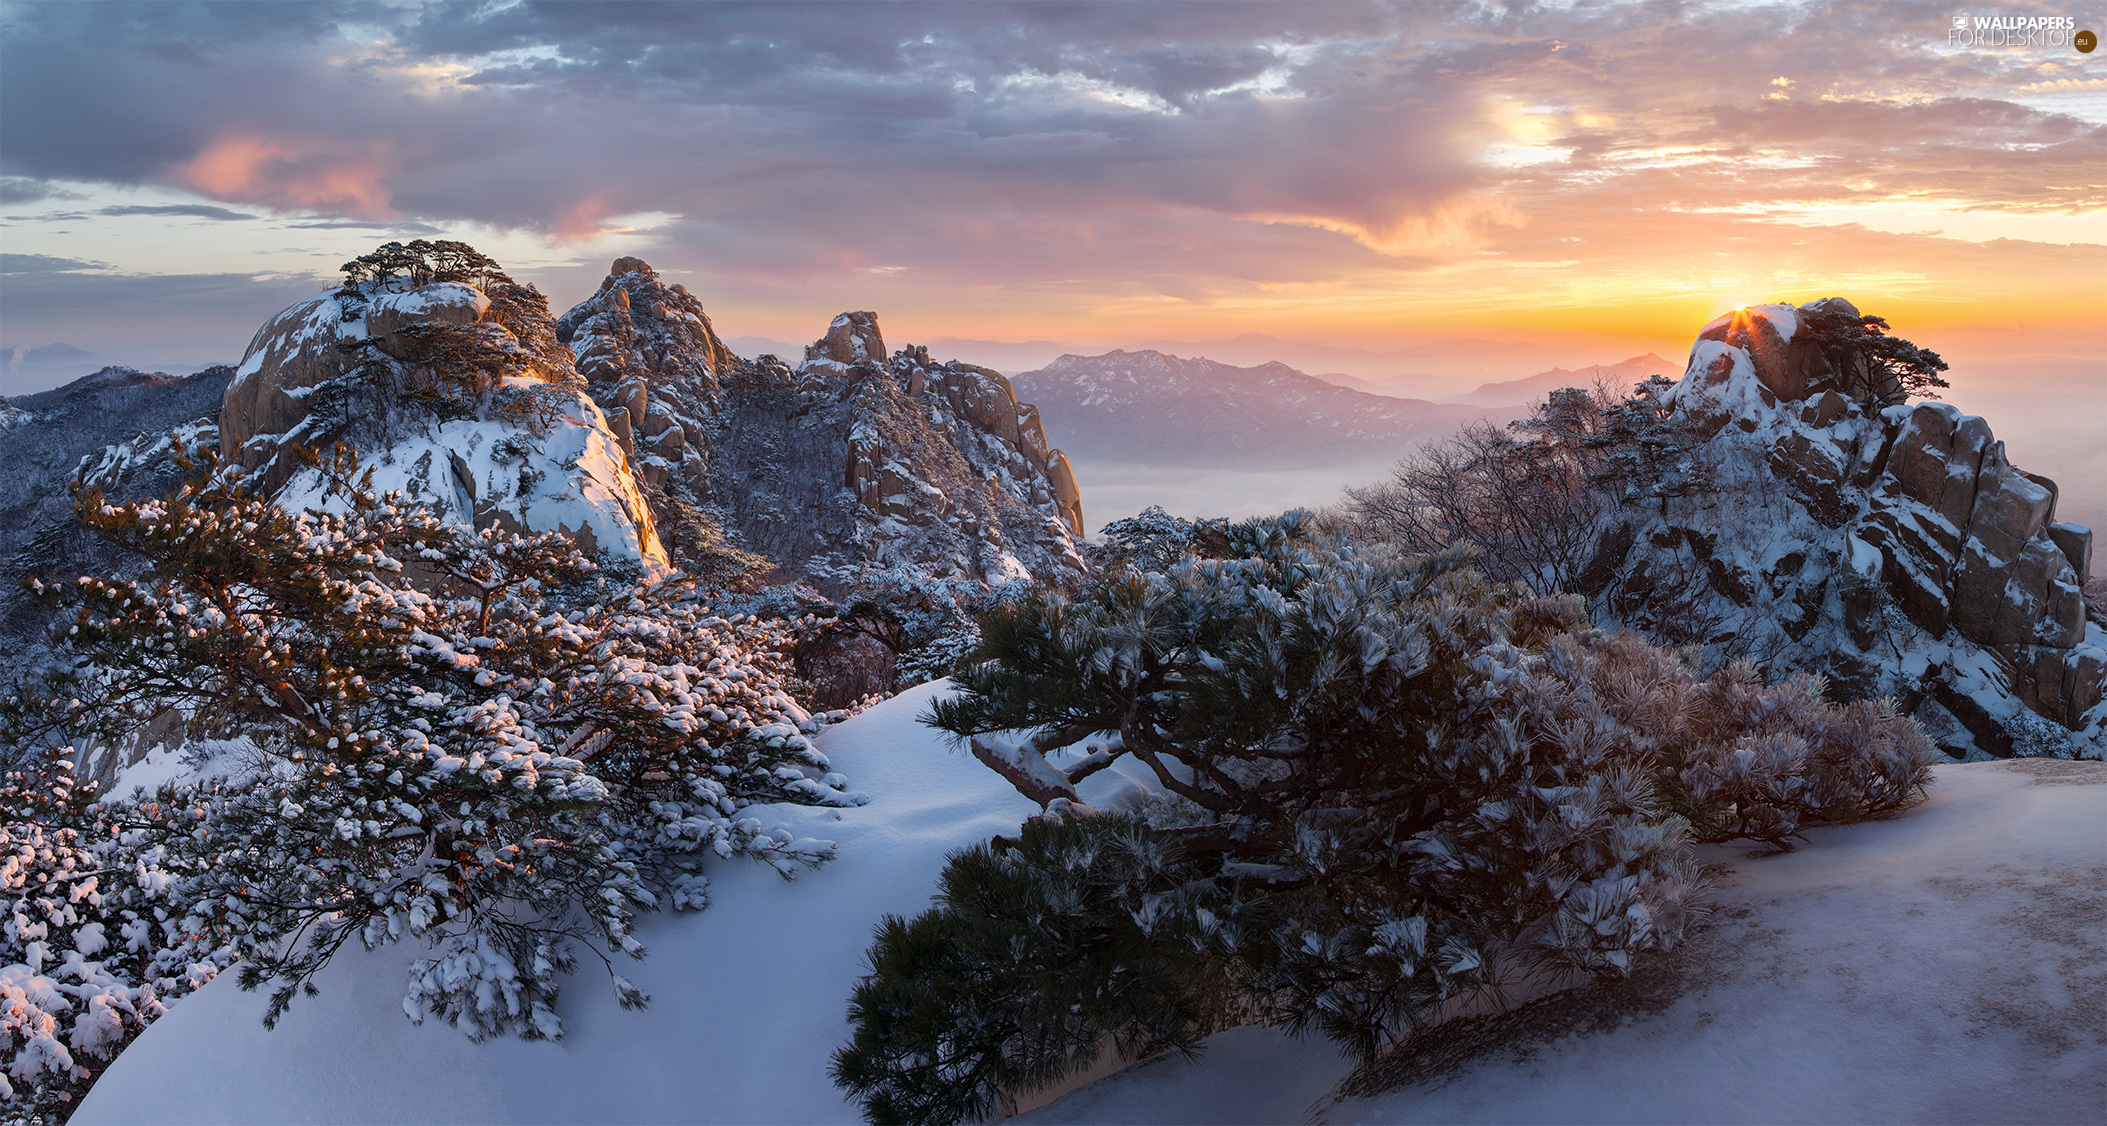 Fog, VEGETATION, Sunrise, rocks, Bukhansan National Park, clouds, viewes, winter, South Korea, trees, Mountain Dobongsan, Mountains